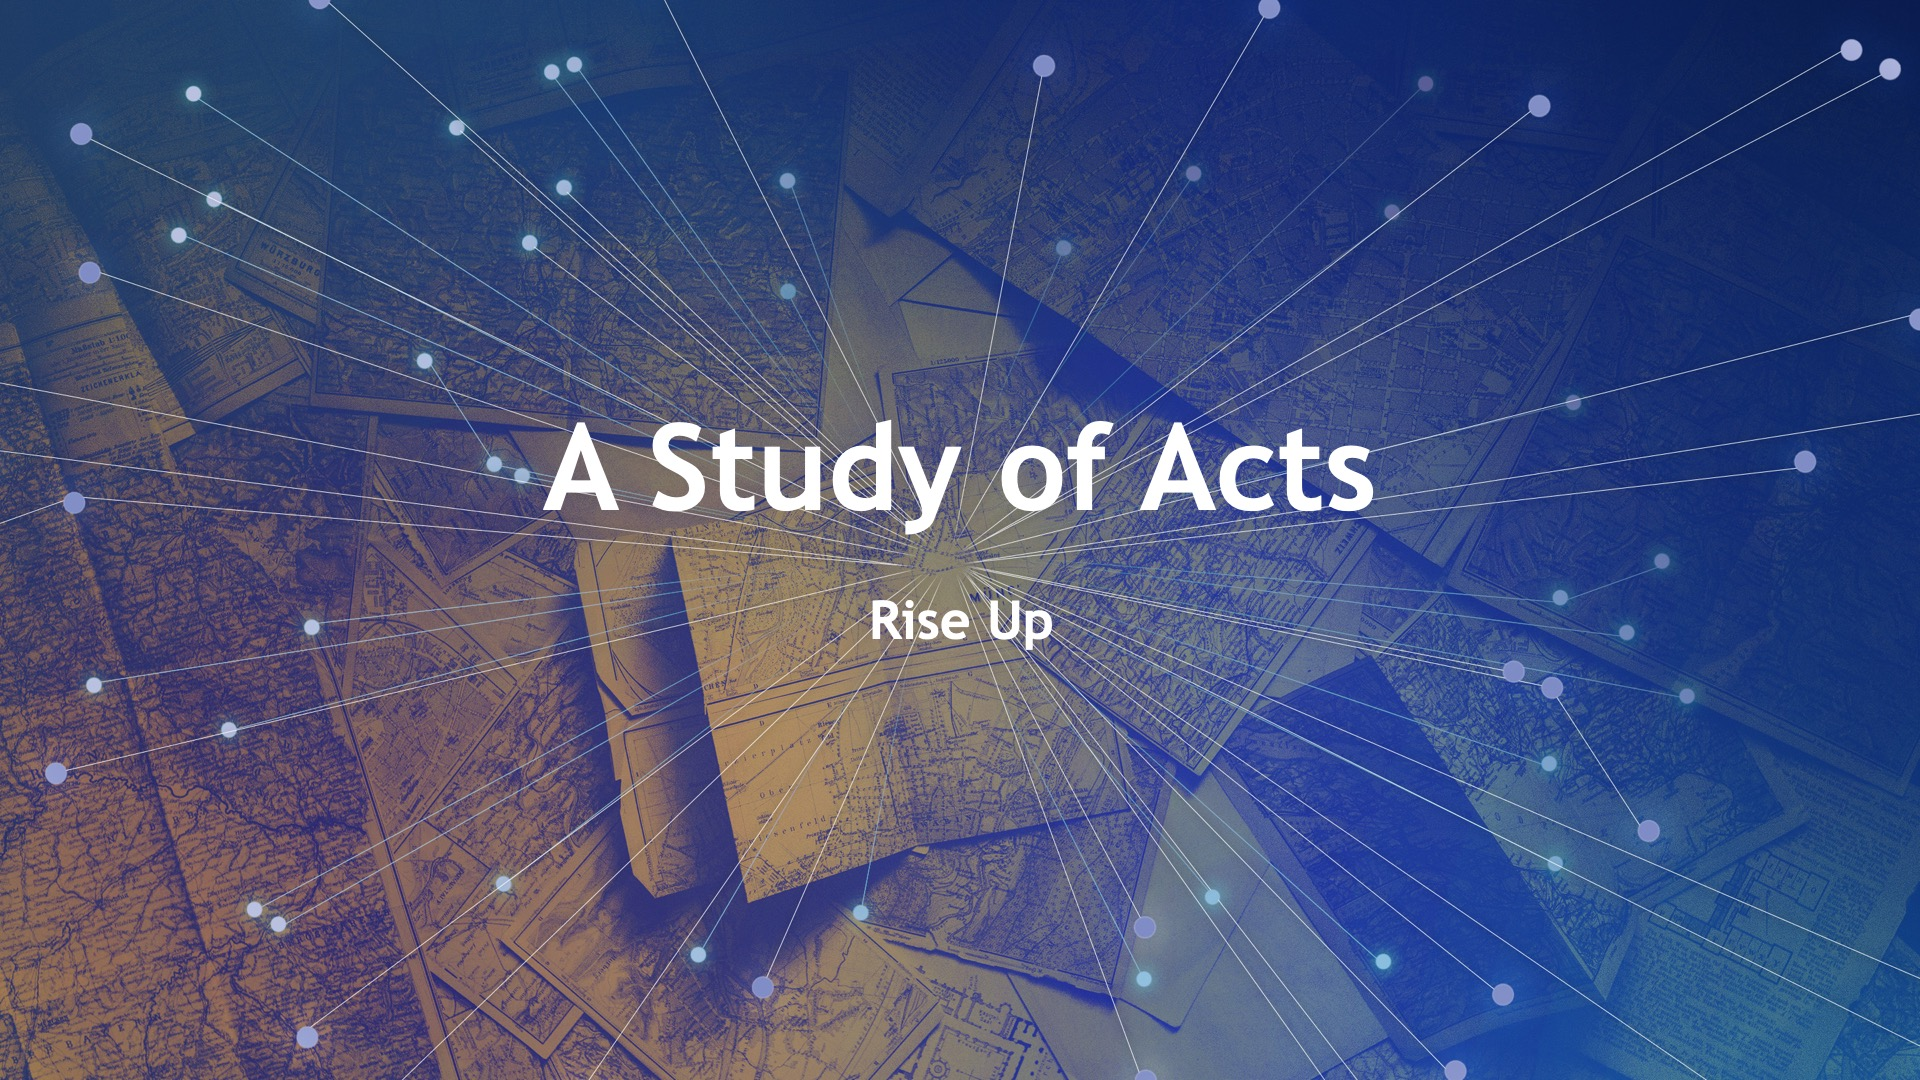 A Study of Acts: Rise Up